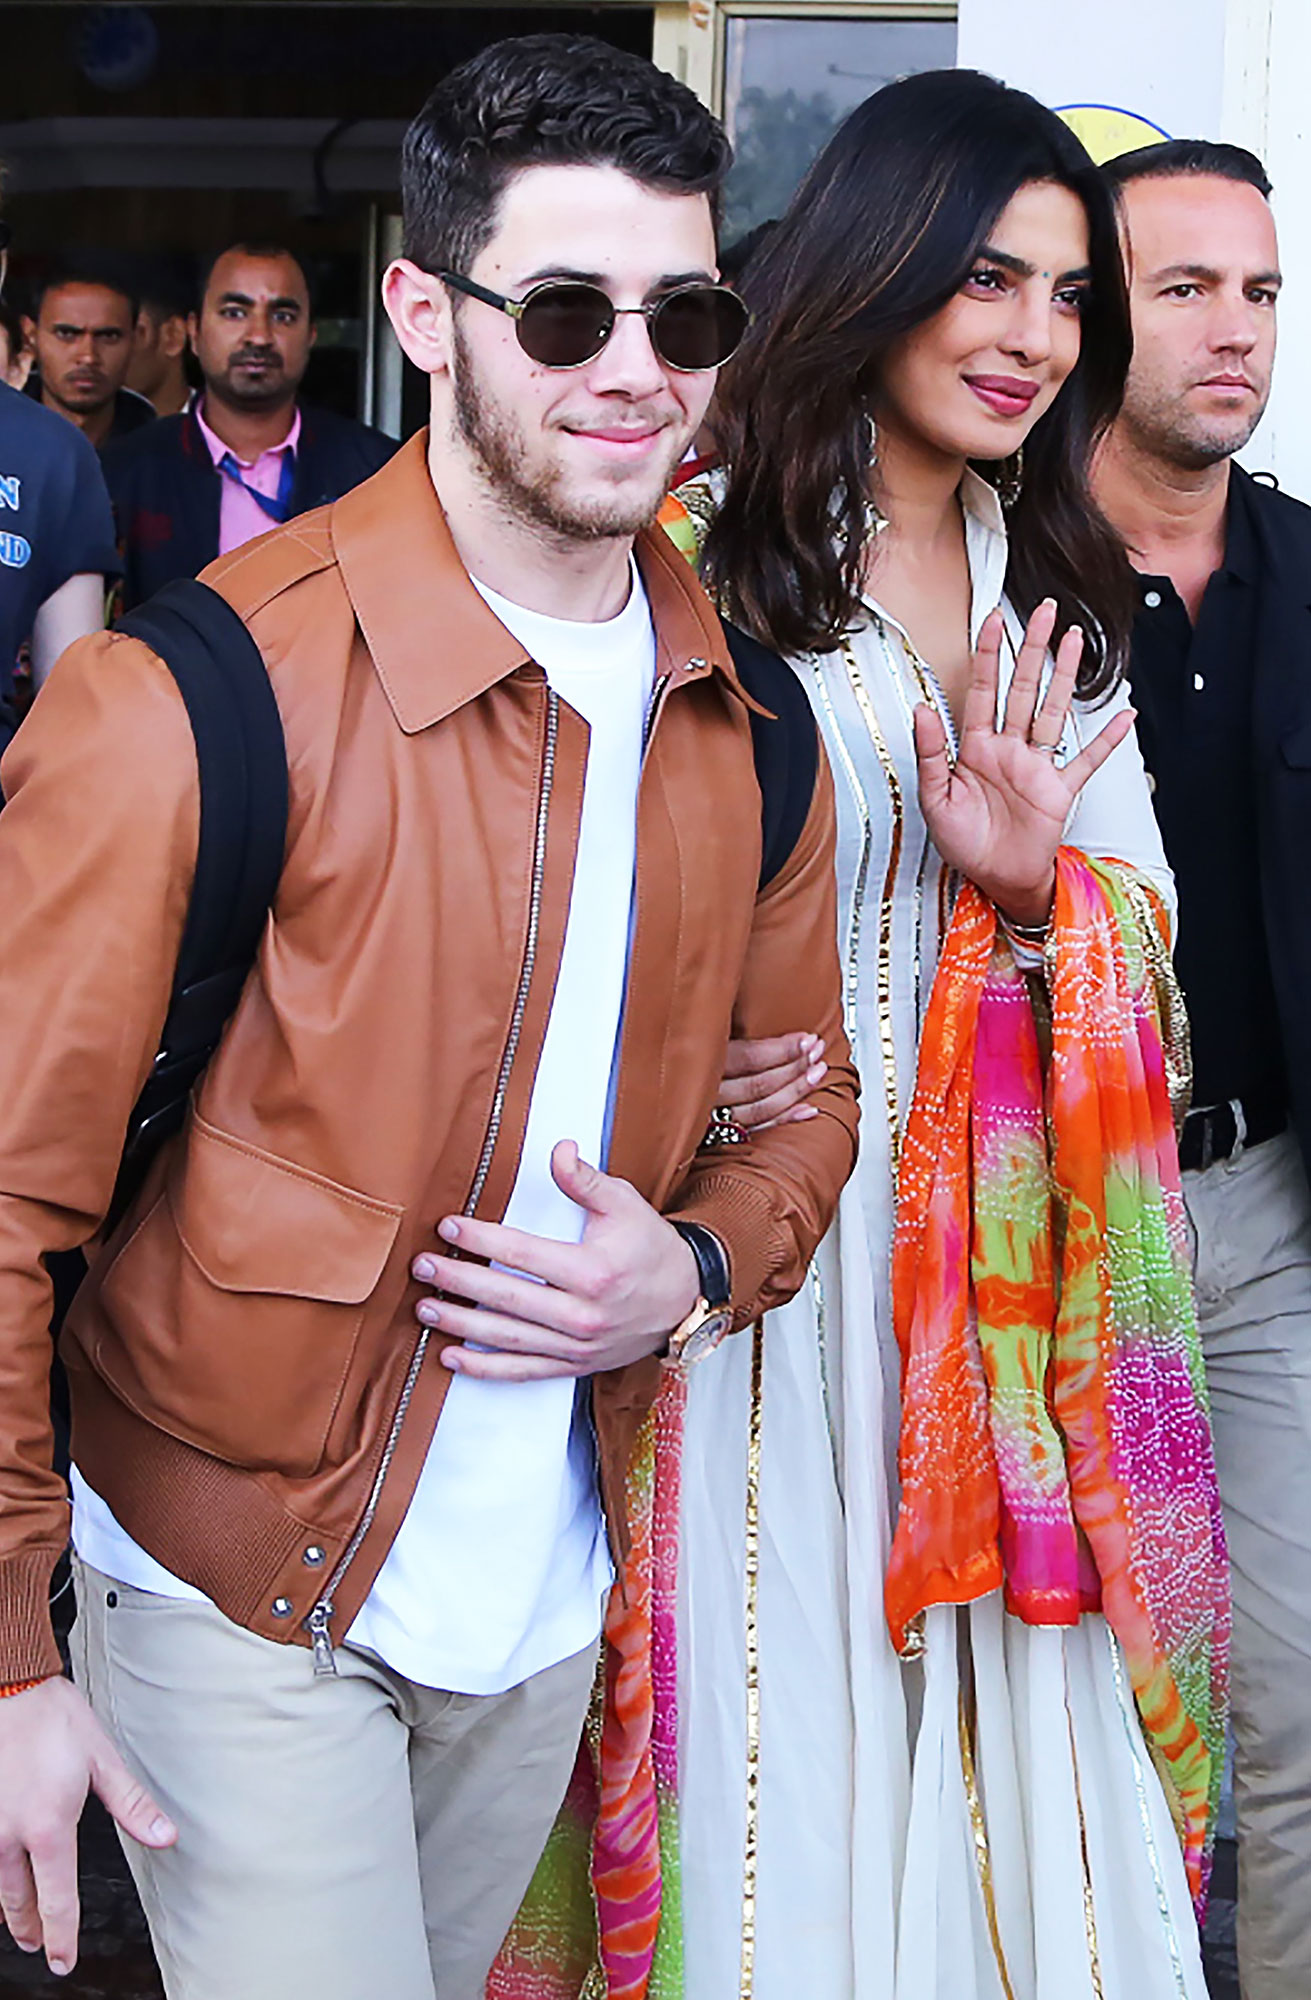 Nick Jonas and Priyanka Chopra's wedding - After kicking off their relationship in May 2018 and a four-month engagement, the former Jonas Brothers member and Quantico actress wed on Saturday, December 1. The pair got hitched at the Umaid Bhawan Palace in Jodhpur, Rajasthan, surrounded by family and friends.